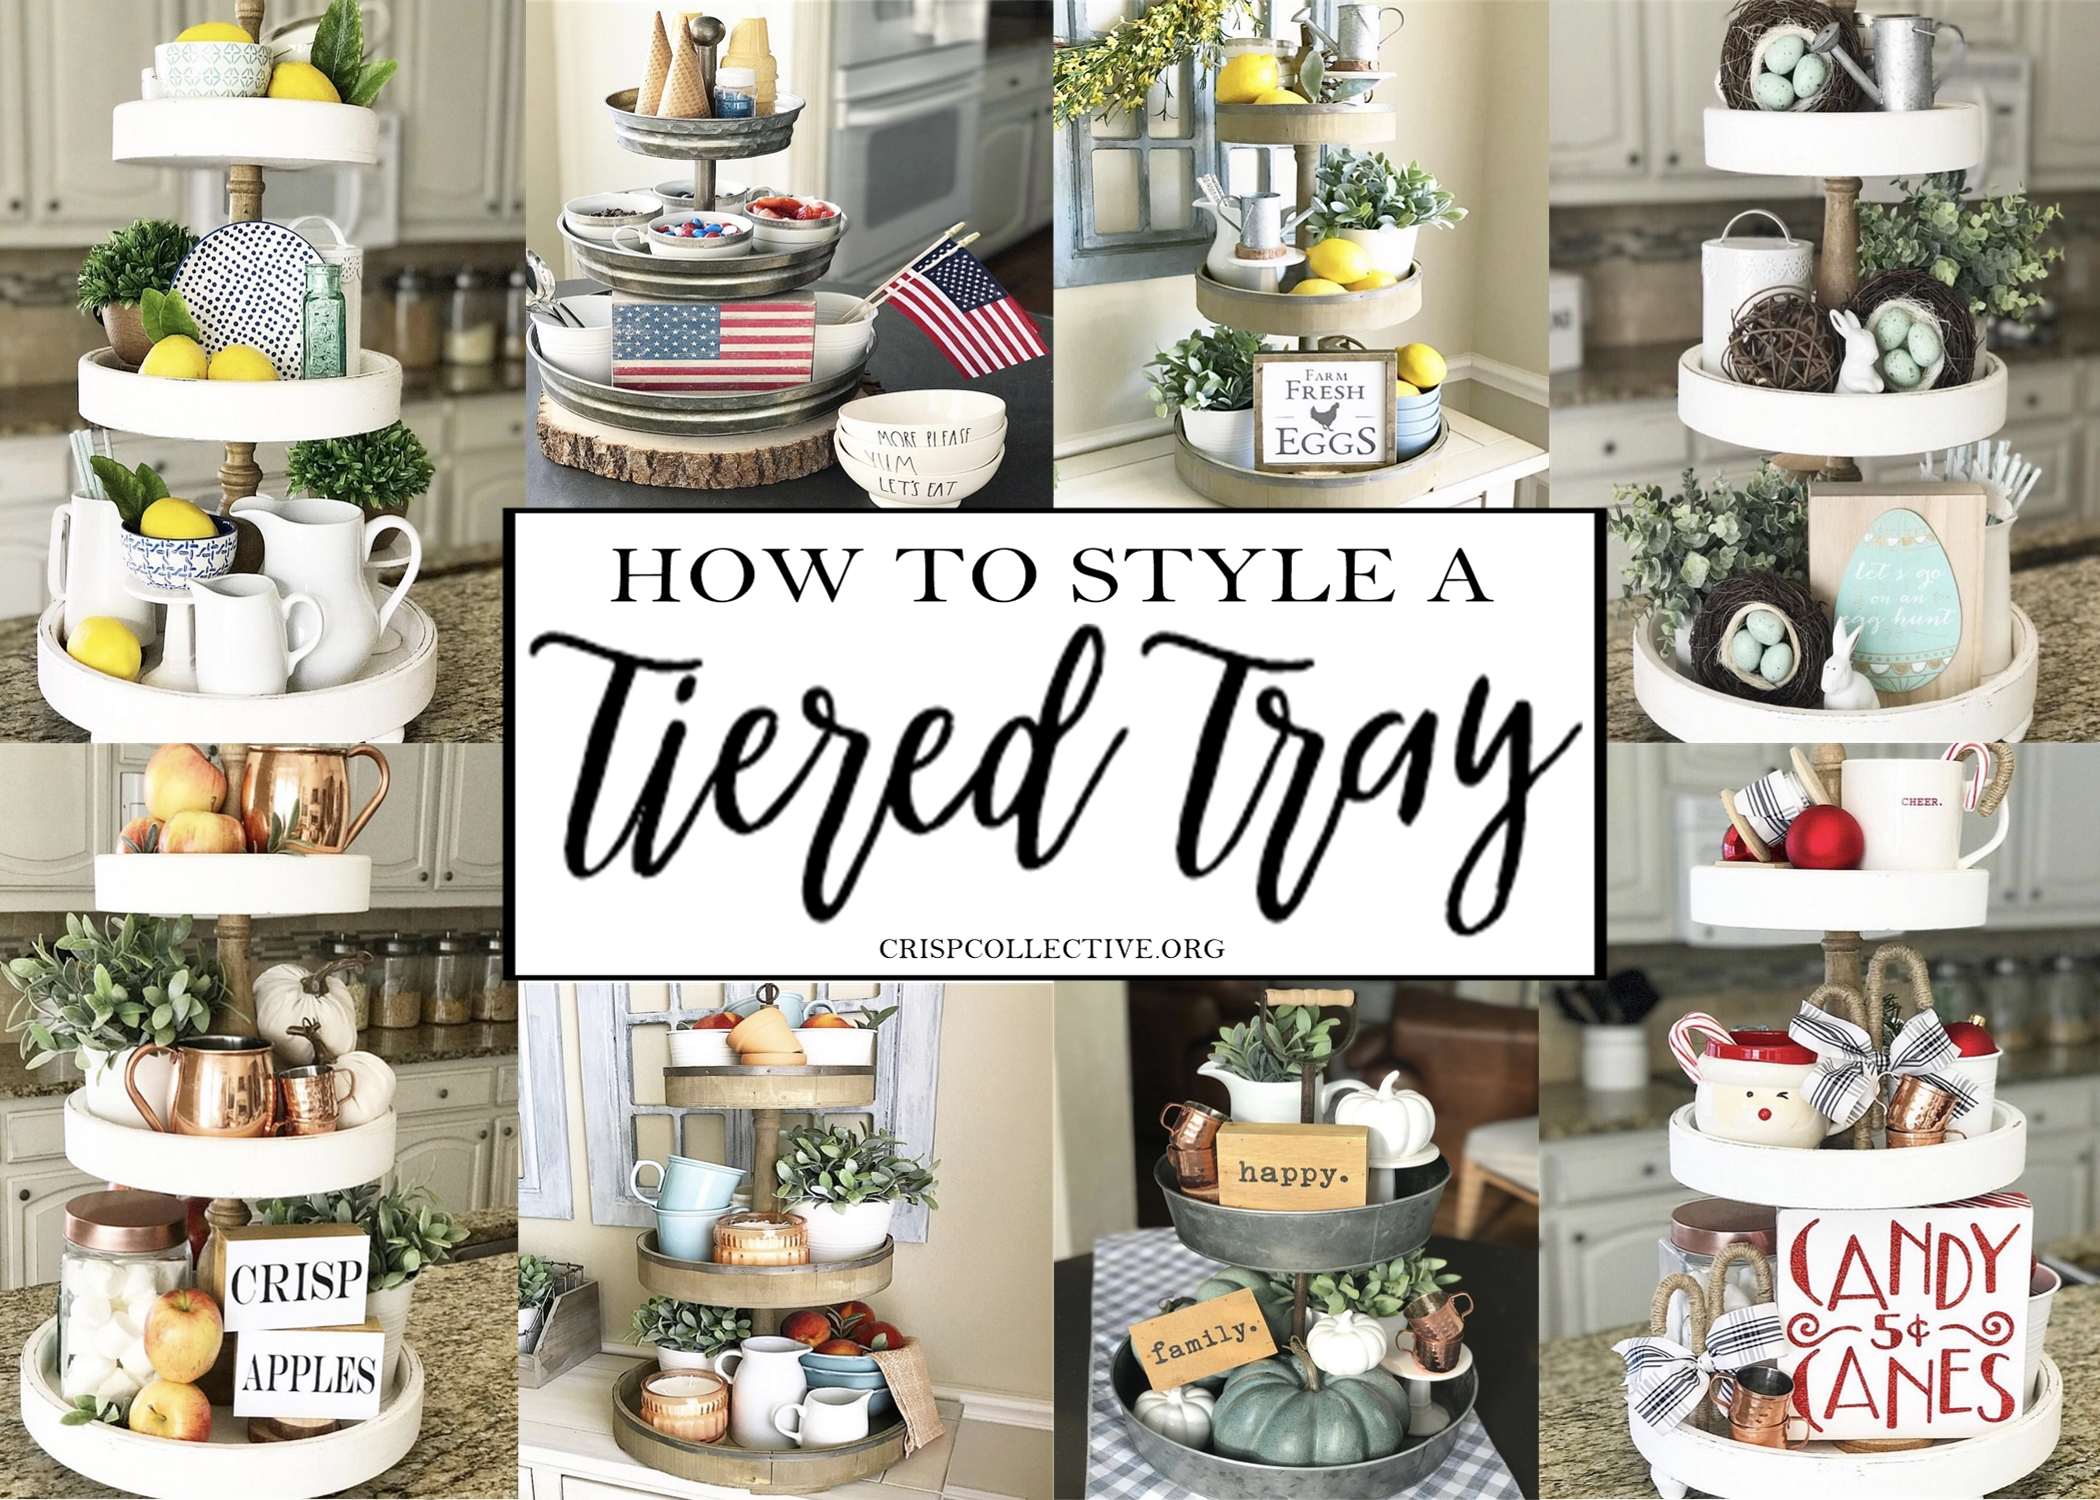 How To Style A Tiered Tray Crisp Collective